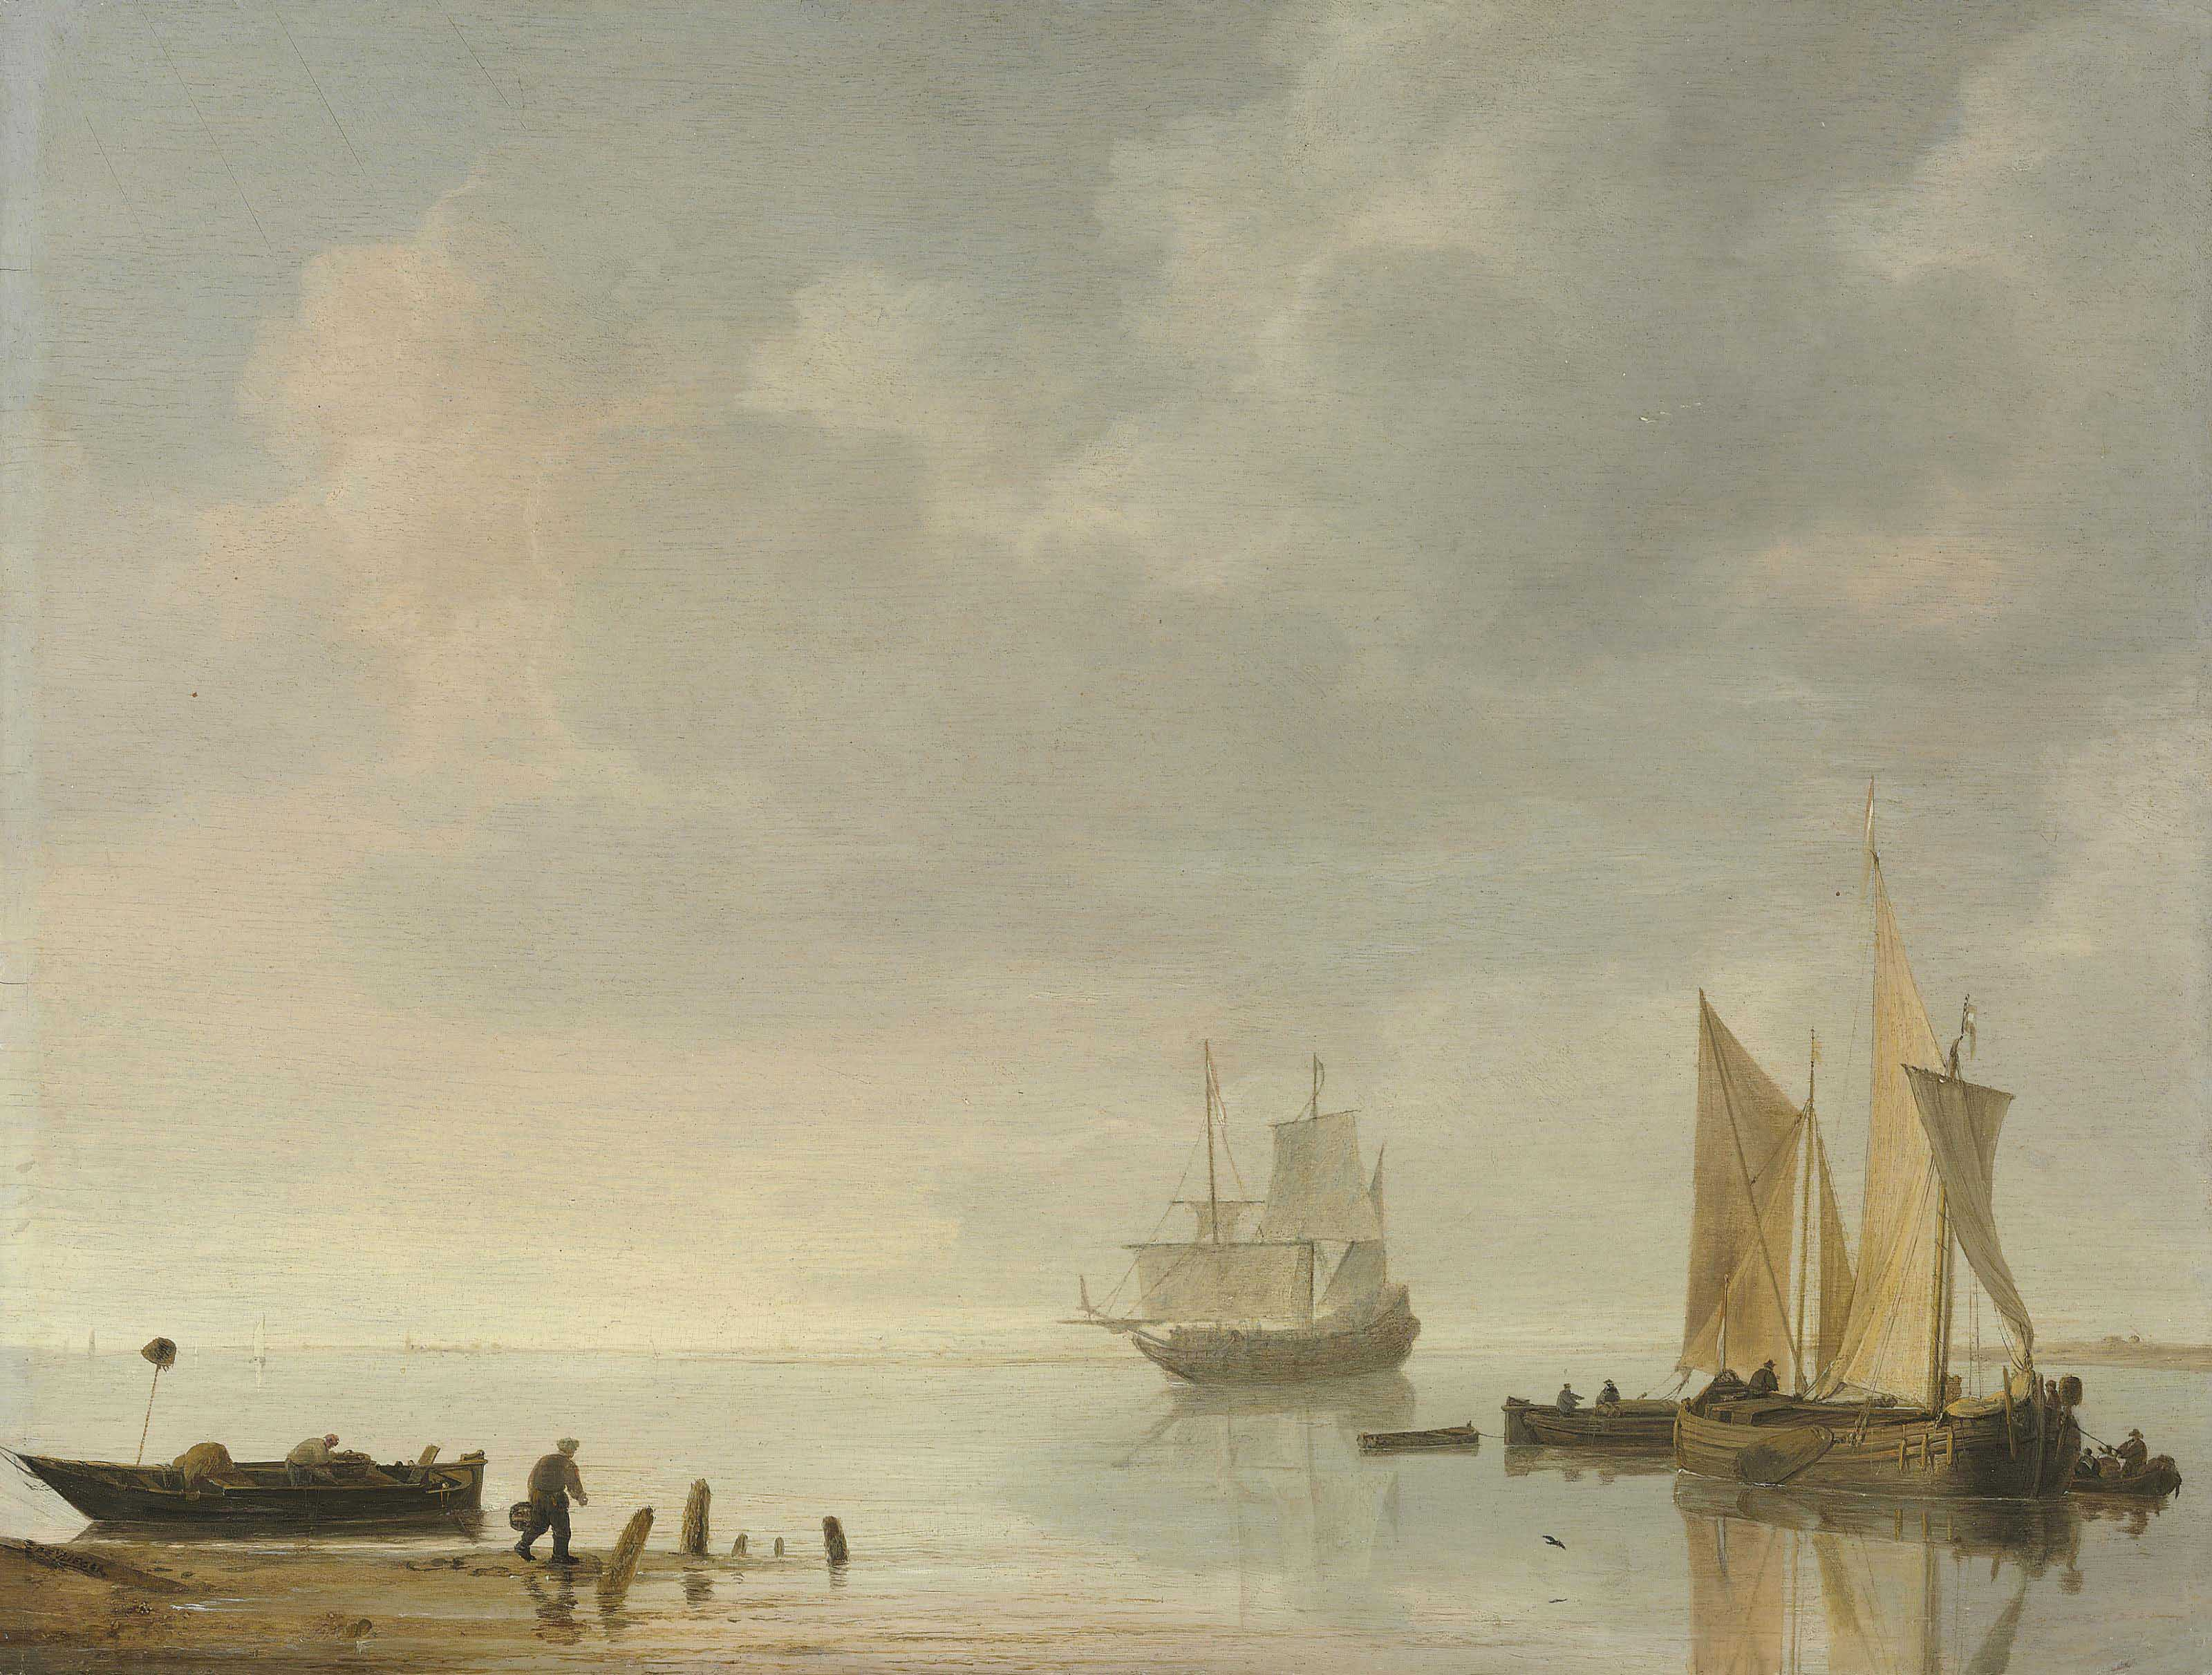 Coastal scene with ships resting on calm waters